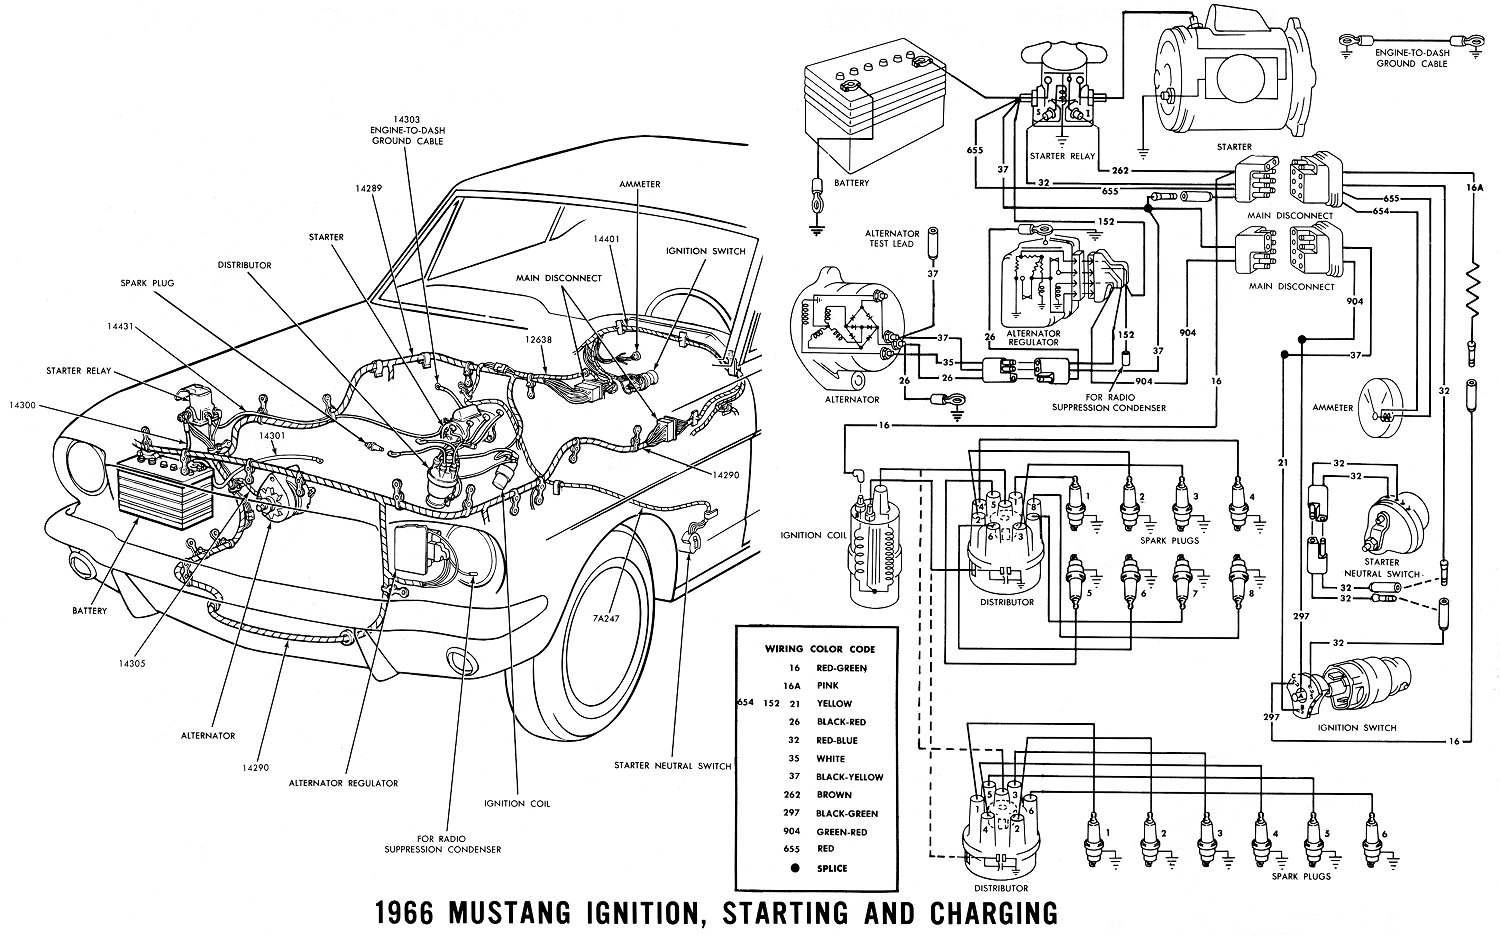 Wiring Diagram For 1966 Ford Mustang Trusted Schematics Wiper Diagrams Average Joe Restoration 66 Dash Ignition